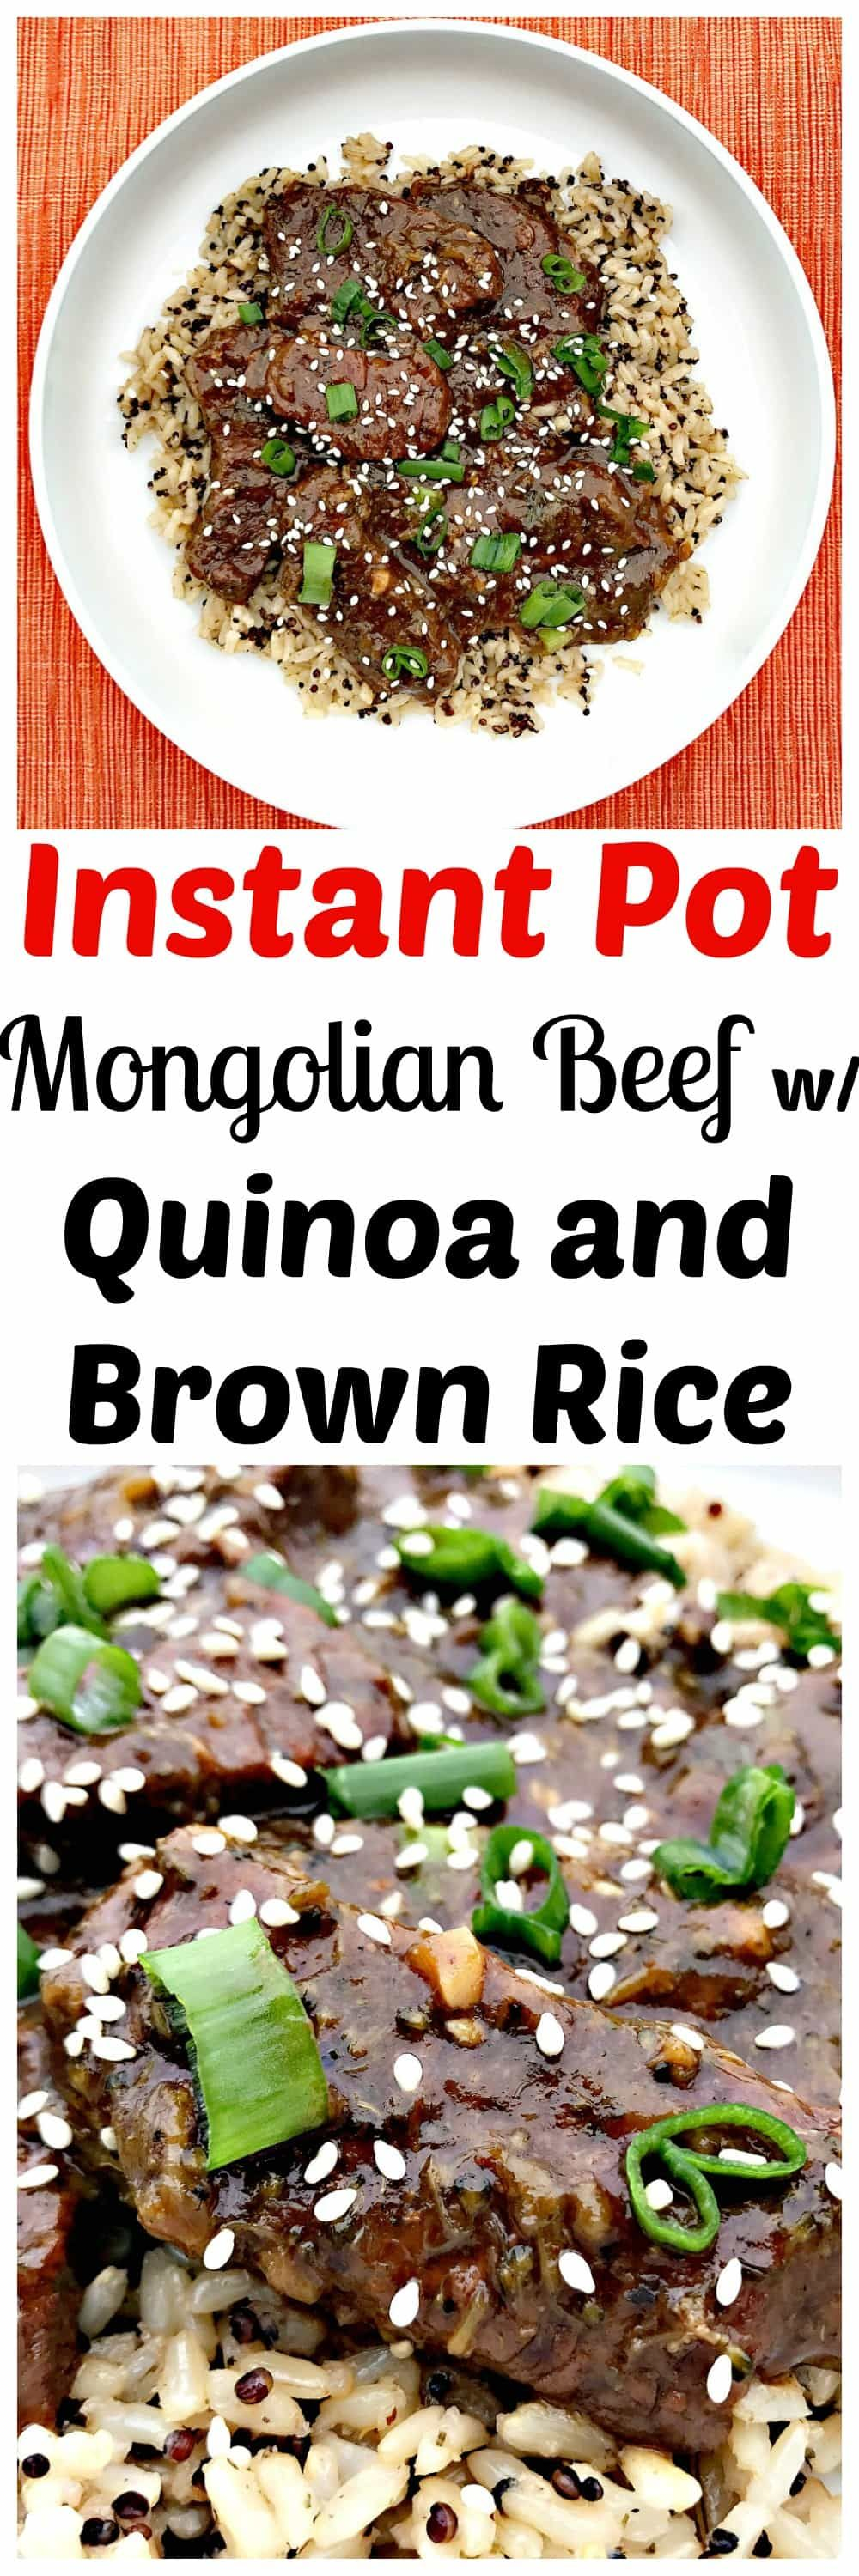 Instant Pot Mongolian Beef With Quinoa And Brown Rice Instant Pot Recipes Beef Kabob Recipes Instapot Recipes